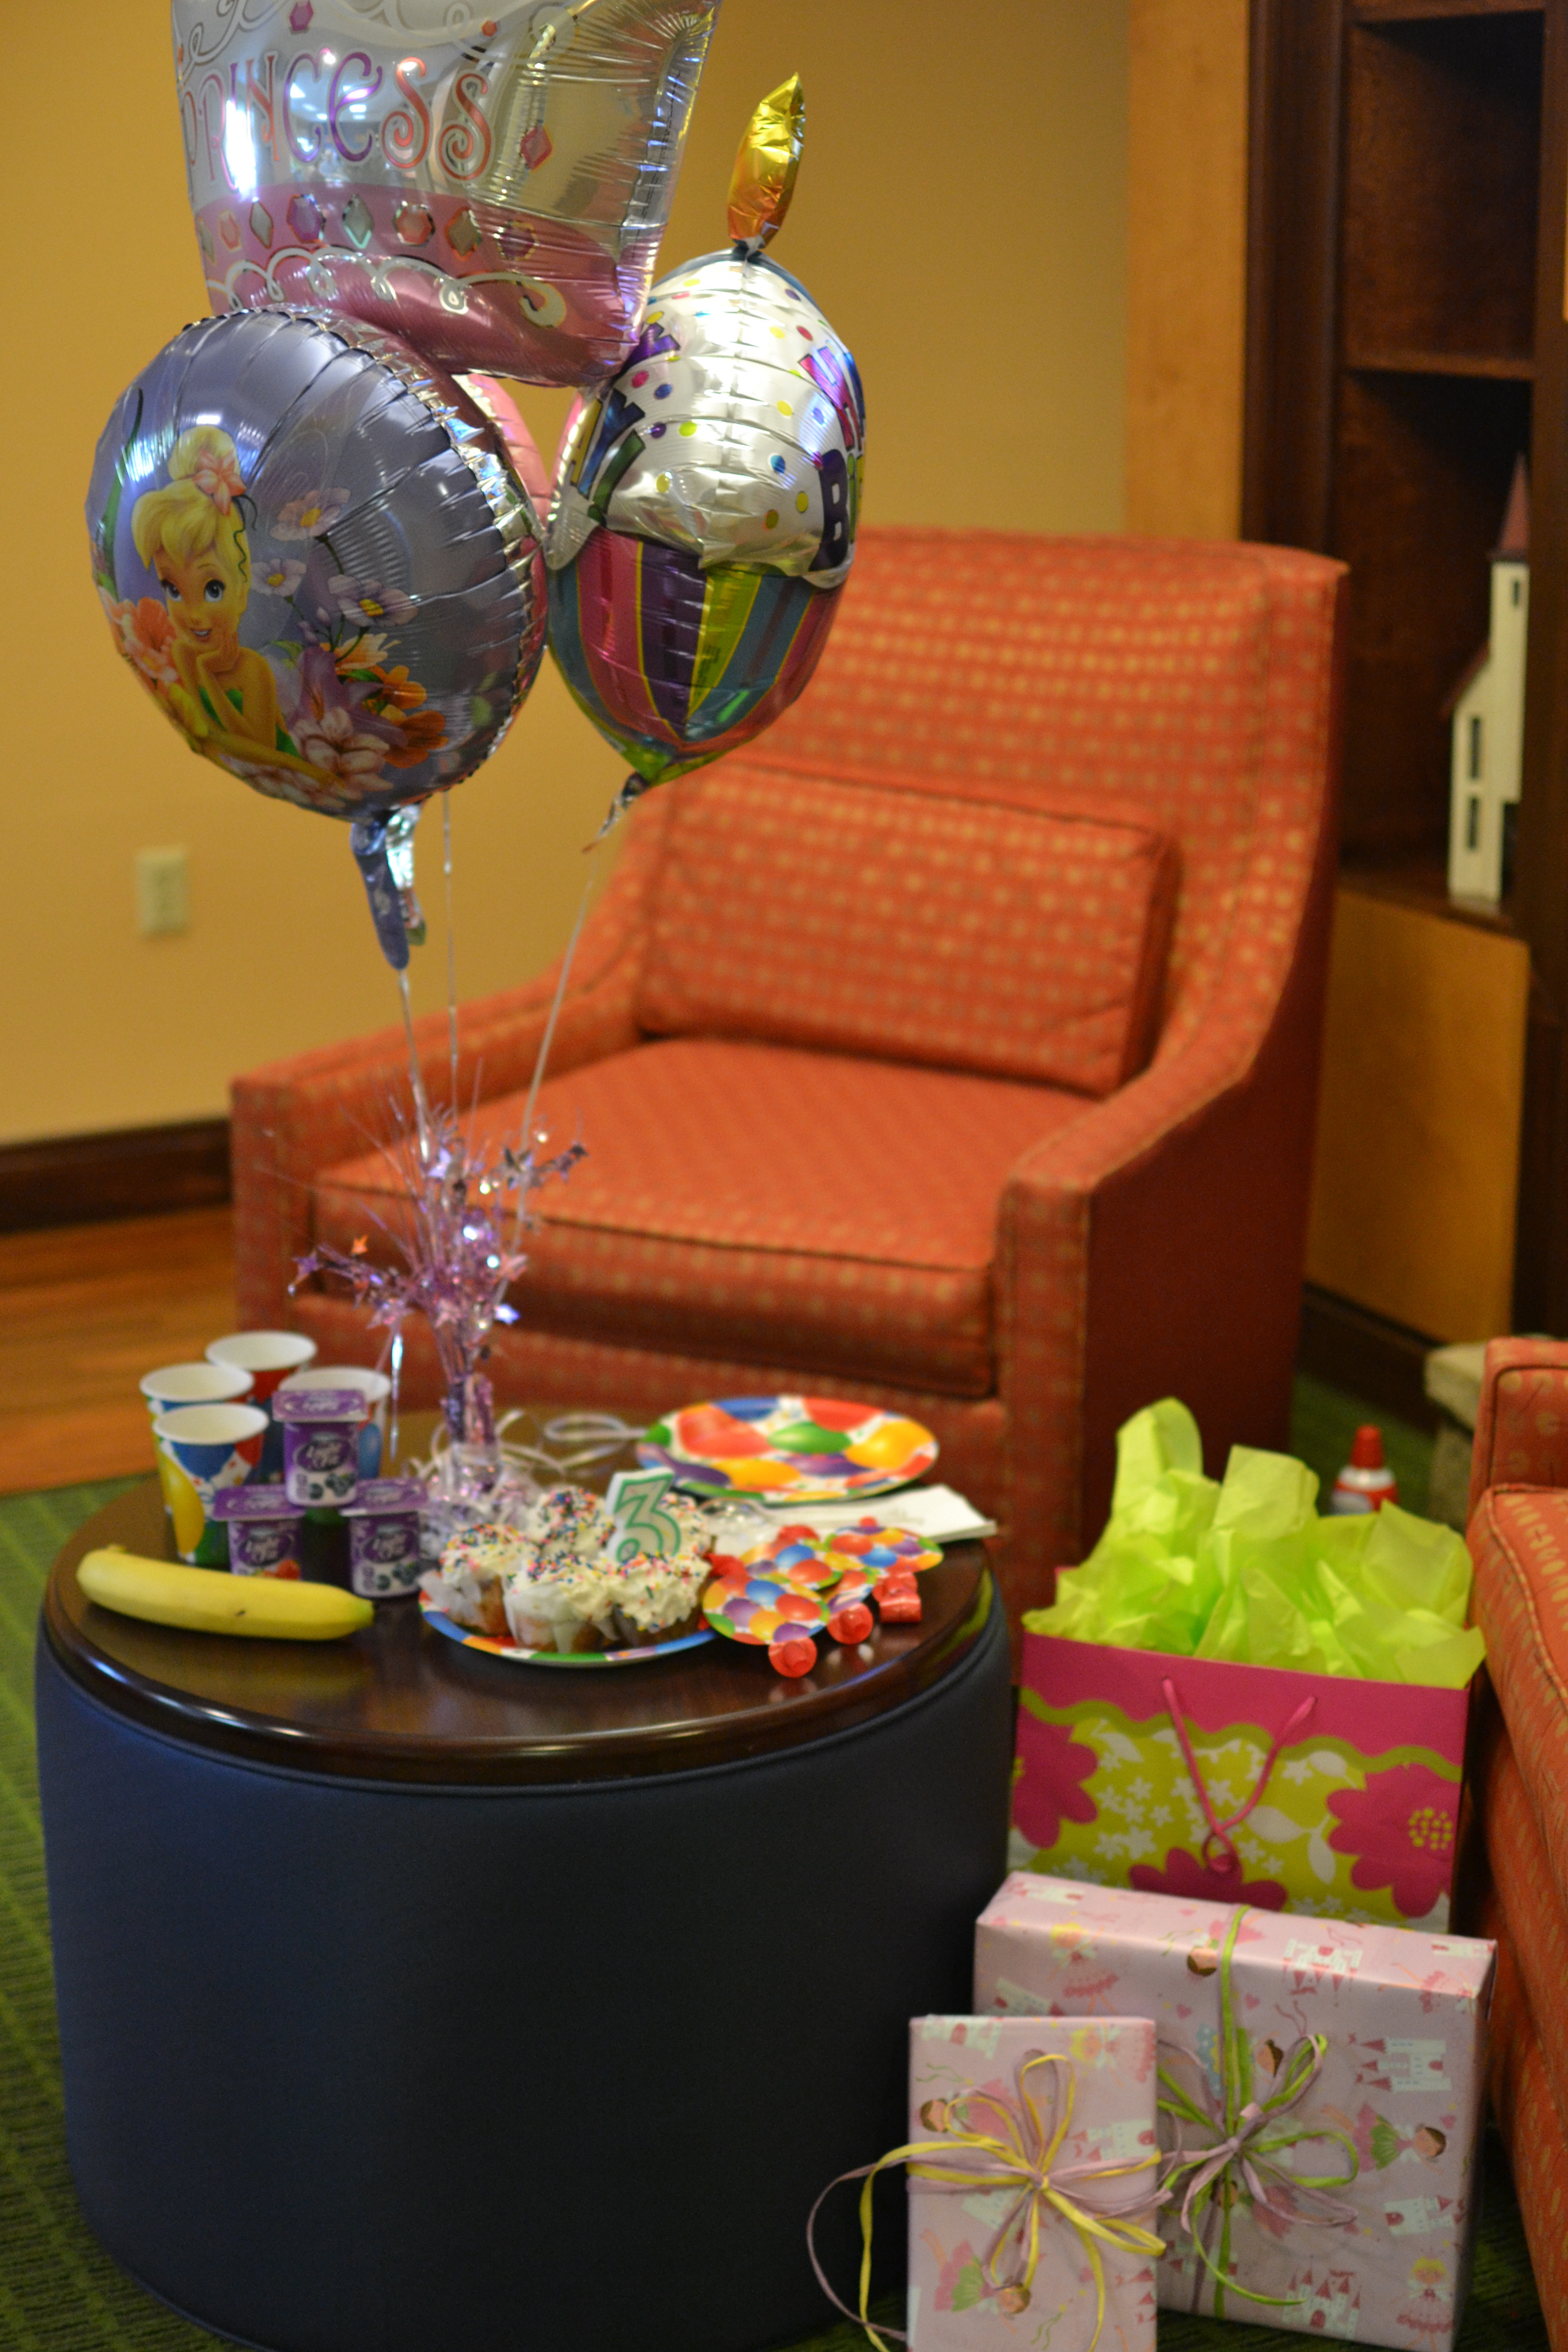 Hotel Room Ideas: How To Pull Off A (cute!) Birthday Party In A Hotel Away